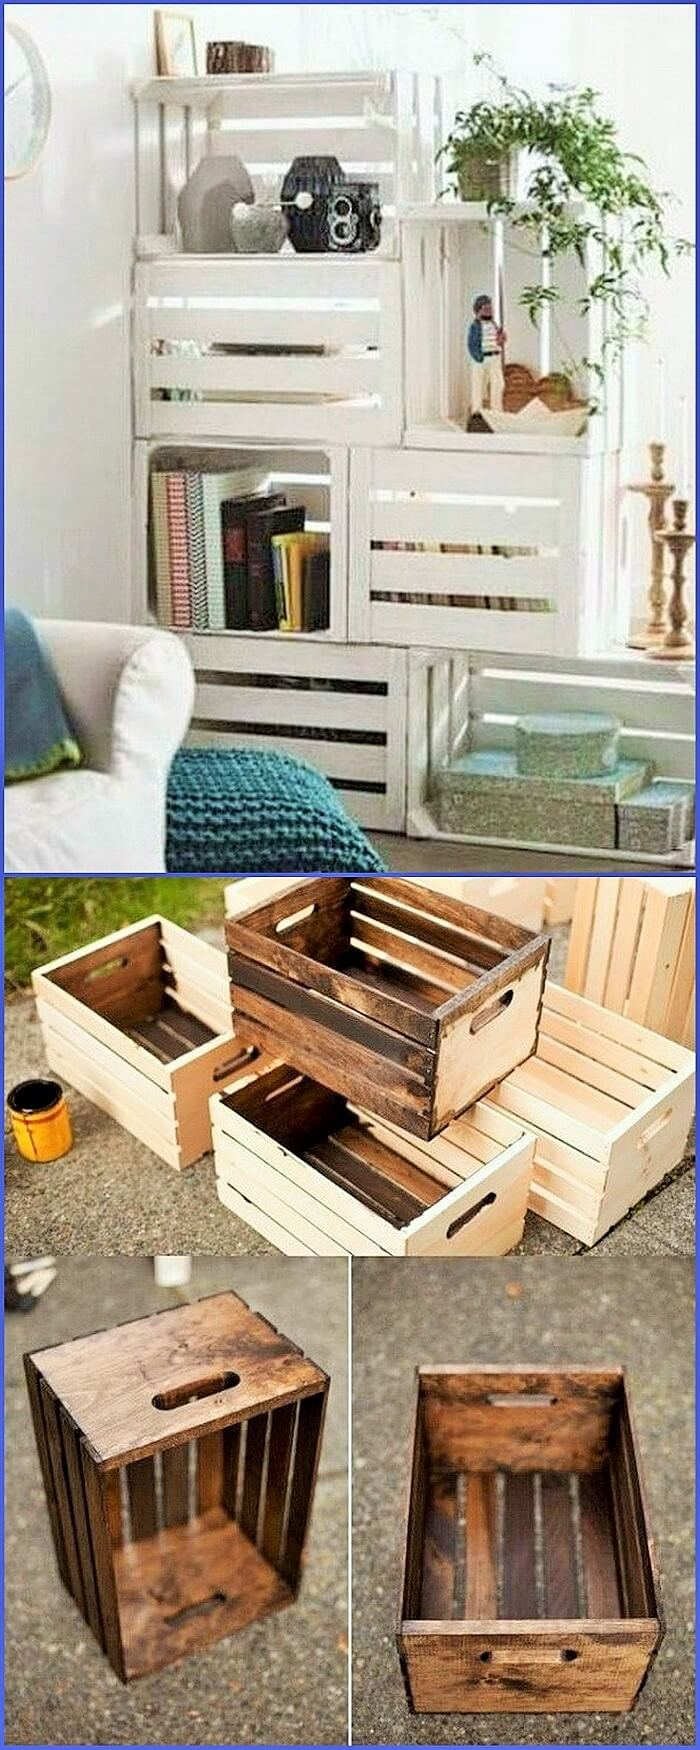 DIY- Wood-Pallets -Projects